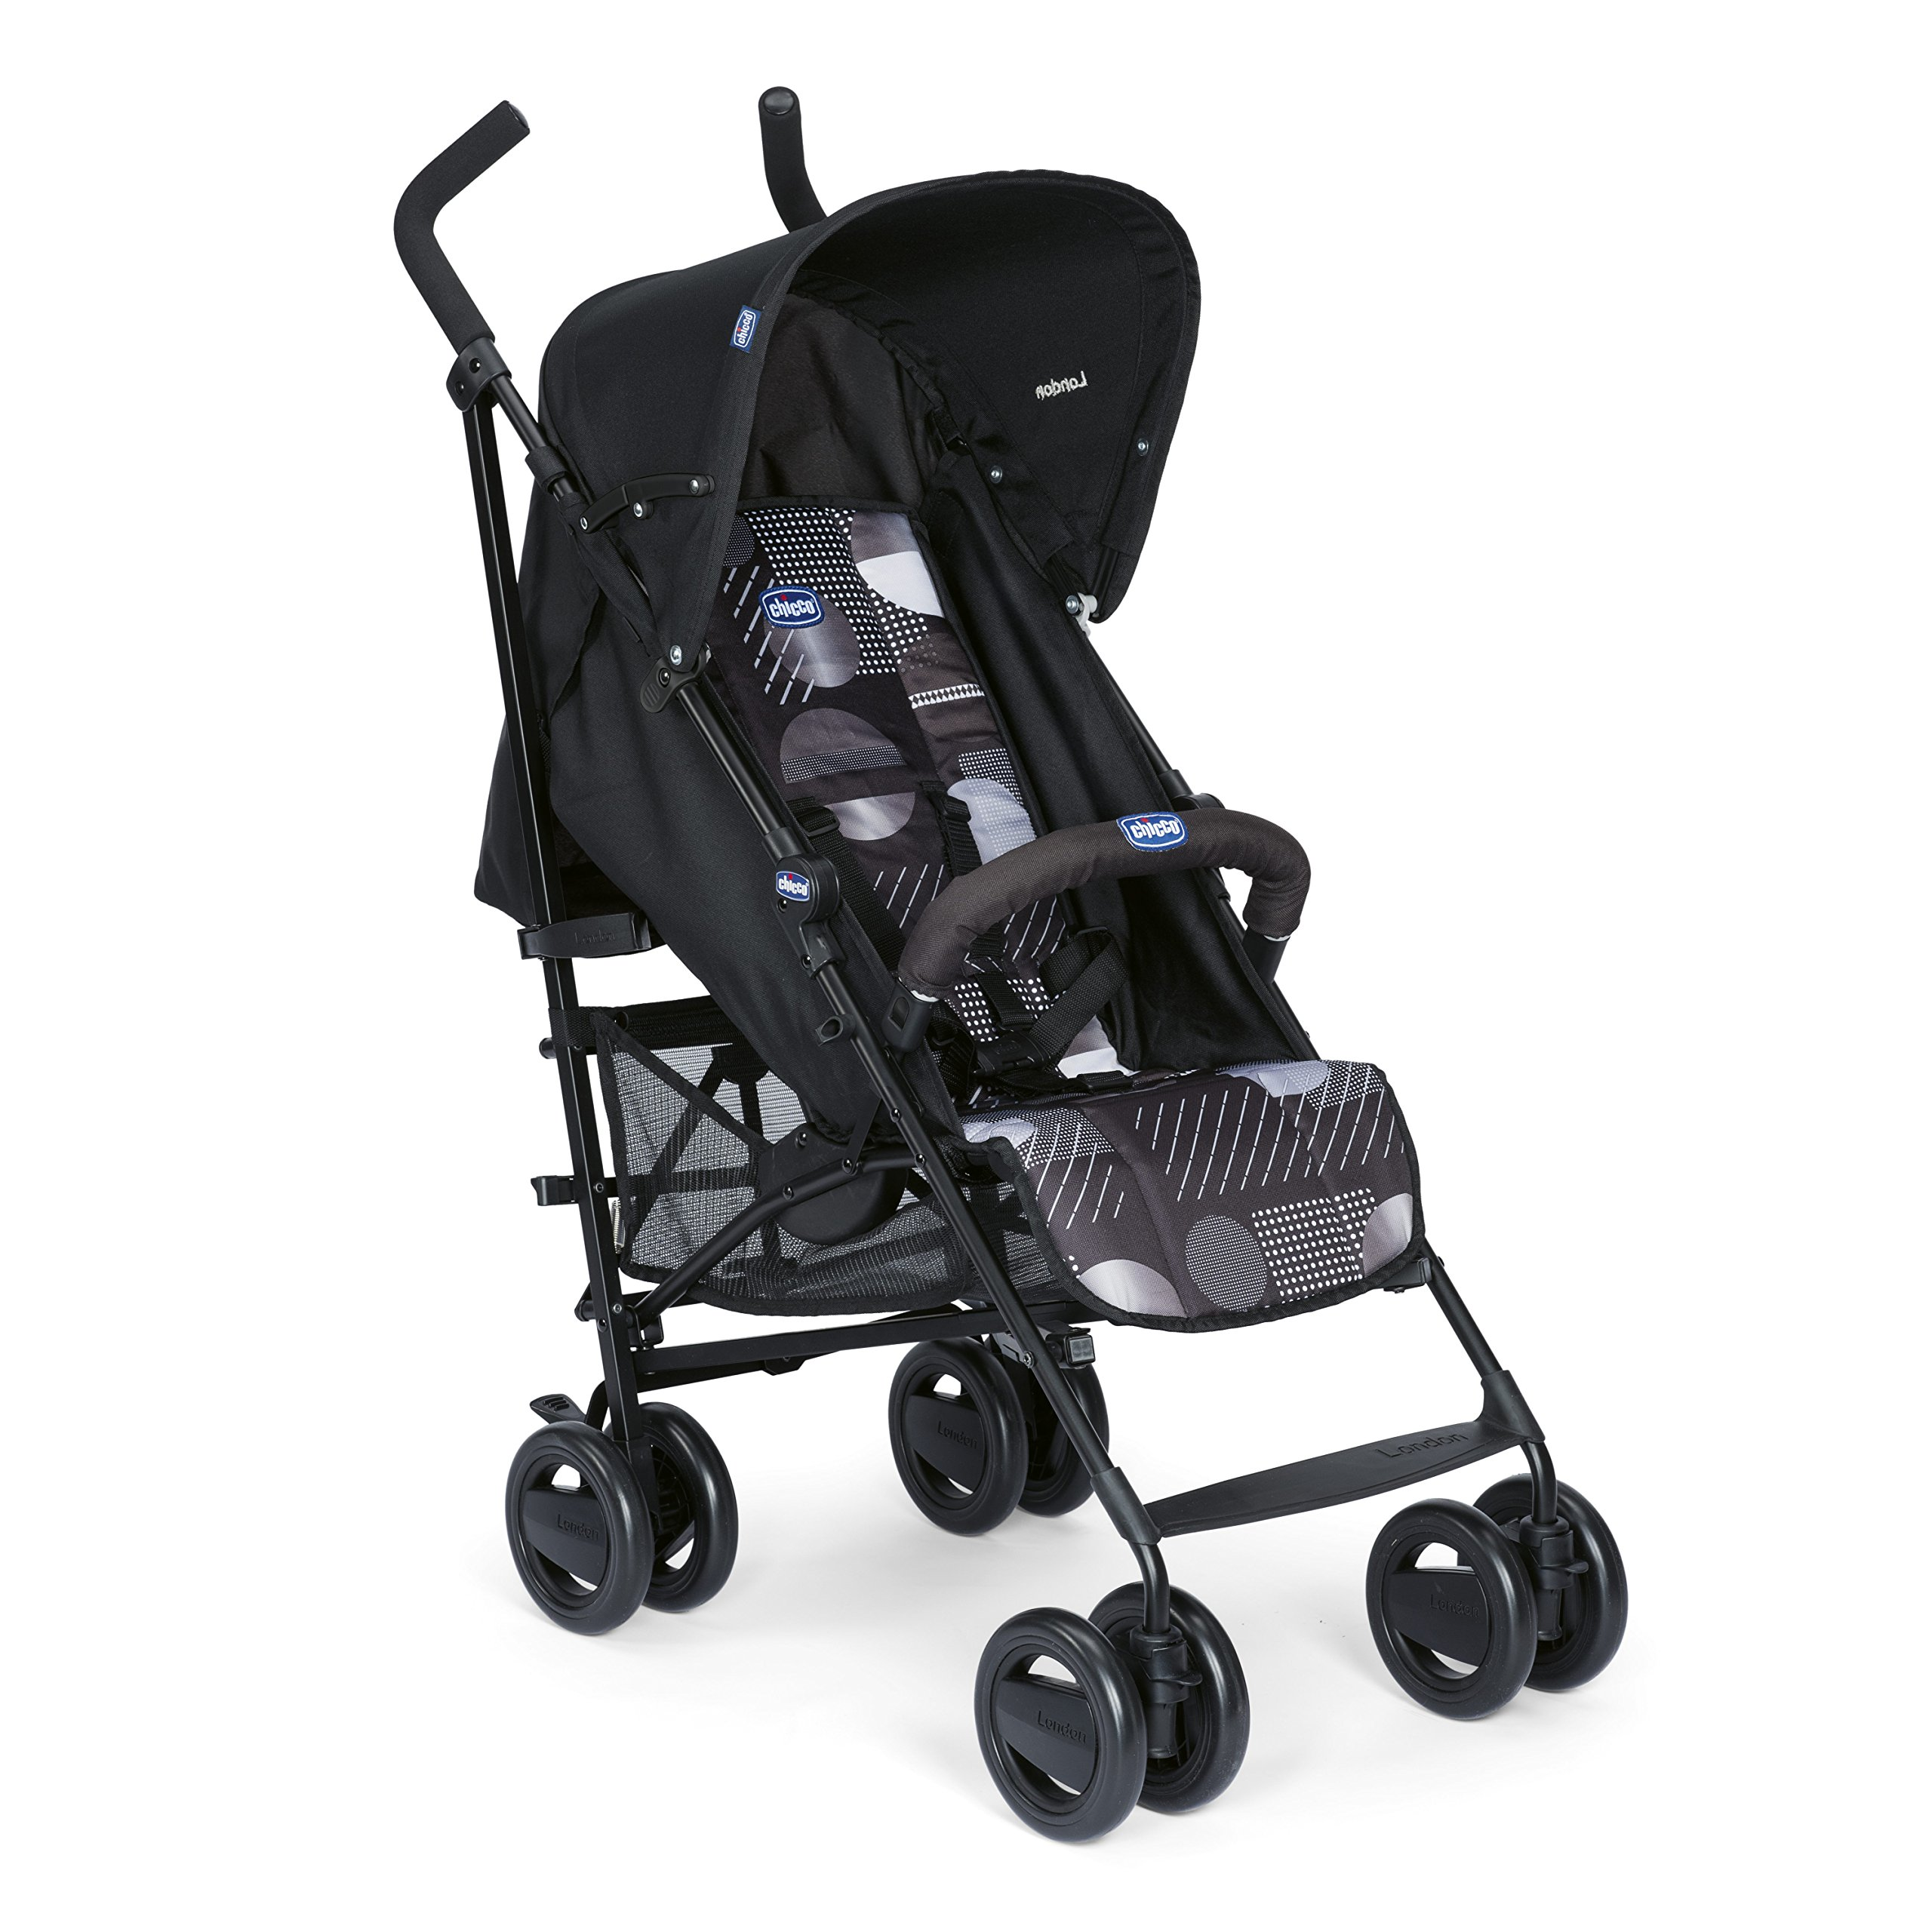 15f16d548 Chicco London - Silla de paseo, 7.2 kg, compacta y manejable, color negro